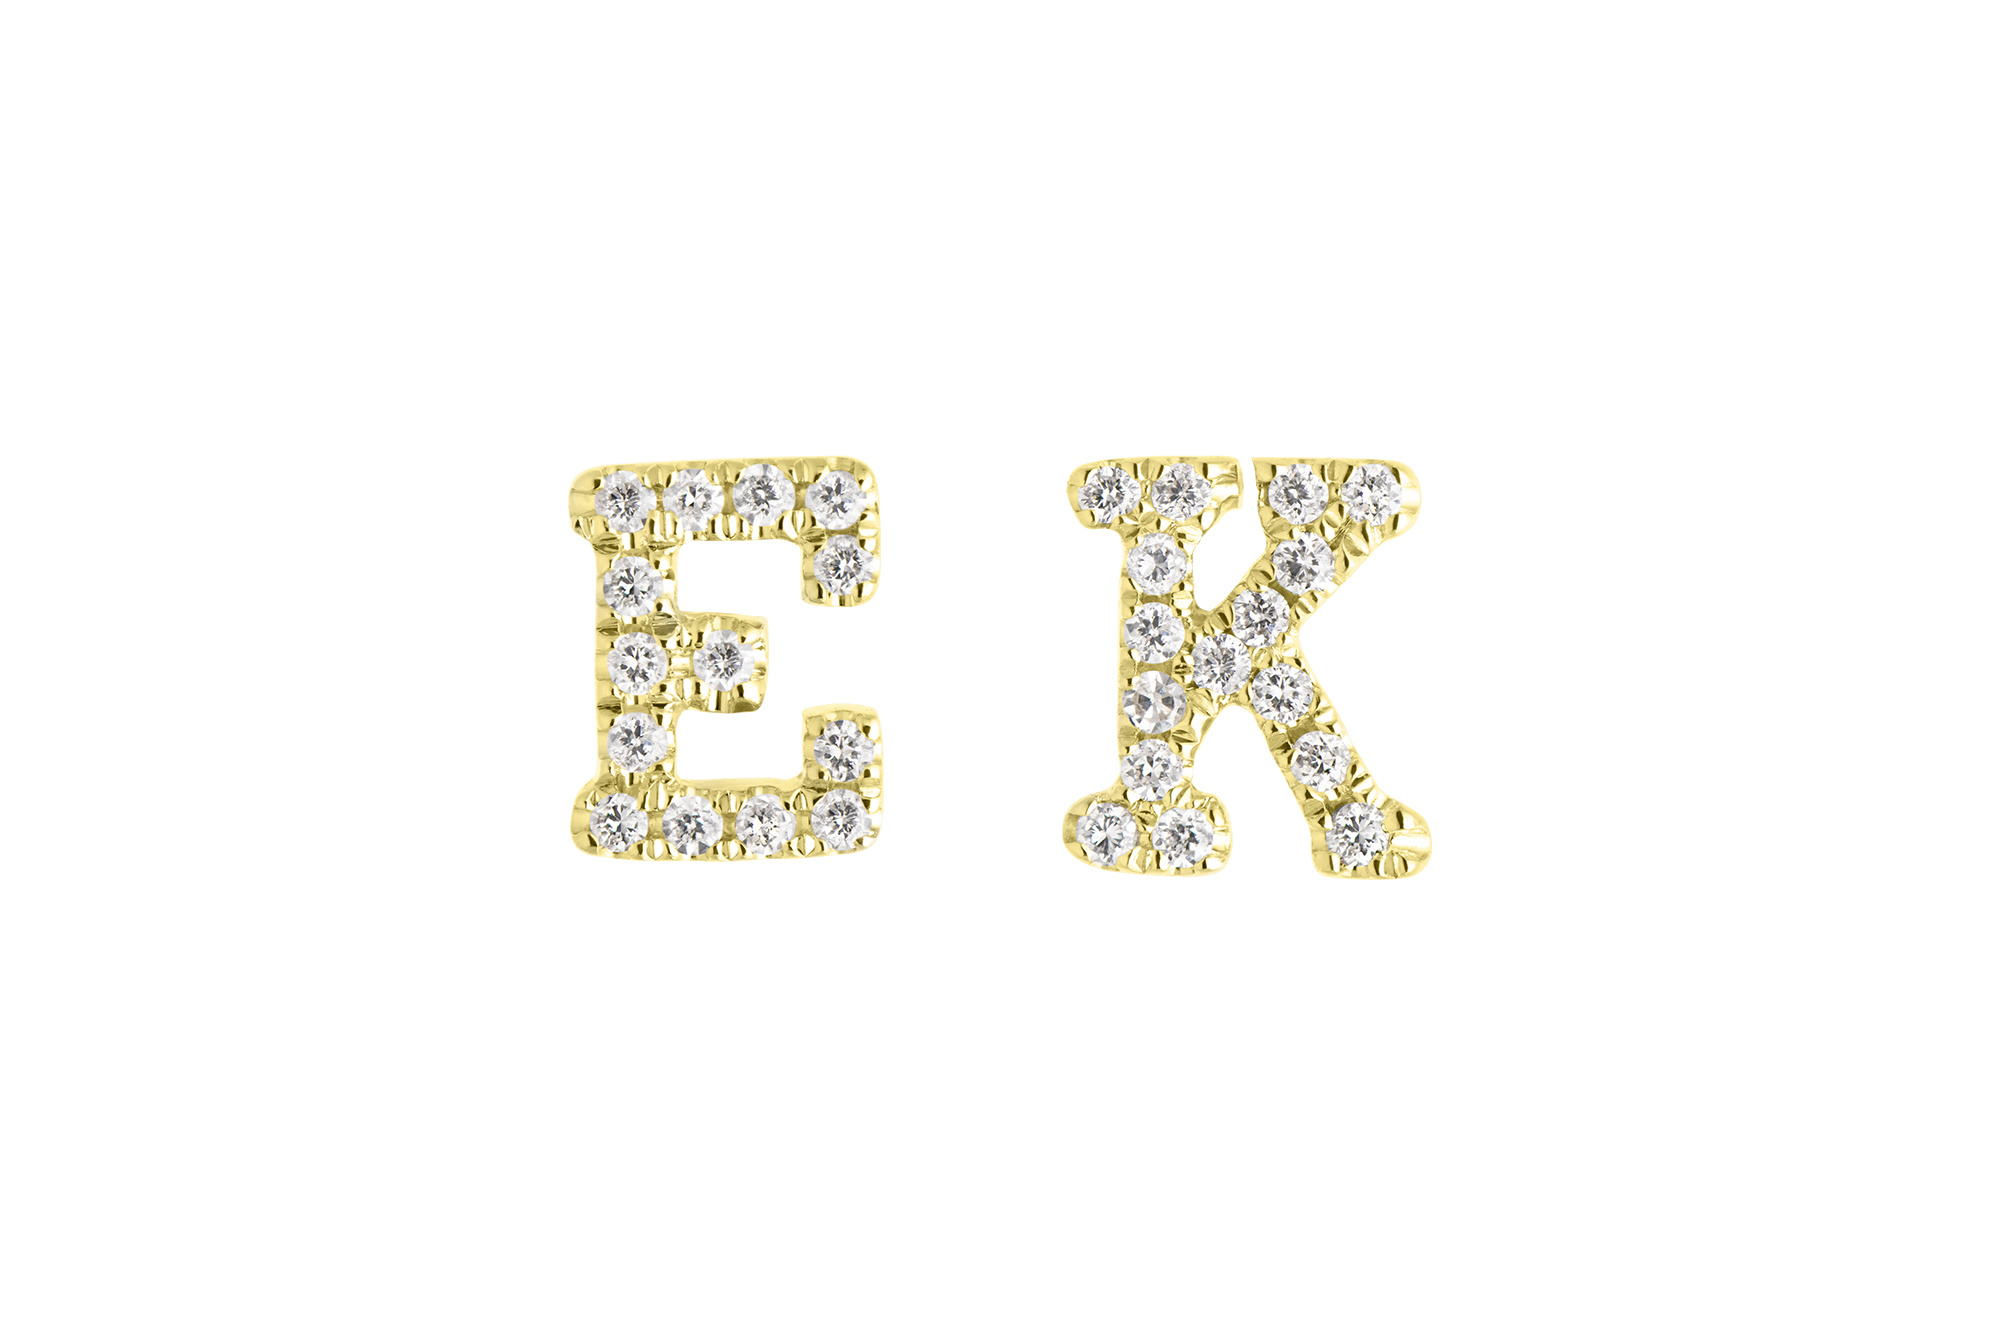 14K Yellow Gold Diamond C Initial Letter Personalized Micro-set Single Earring Stud